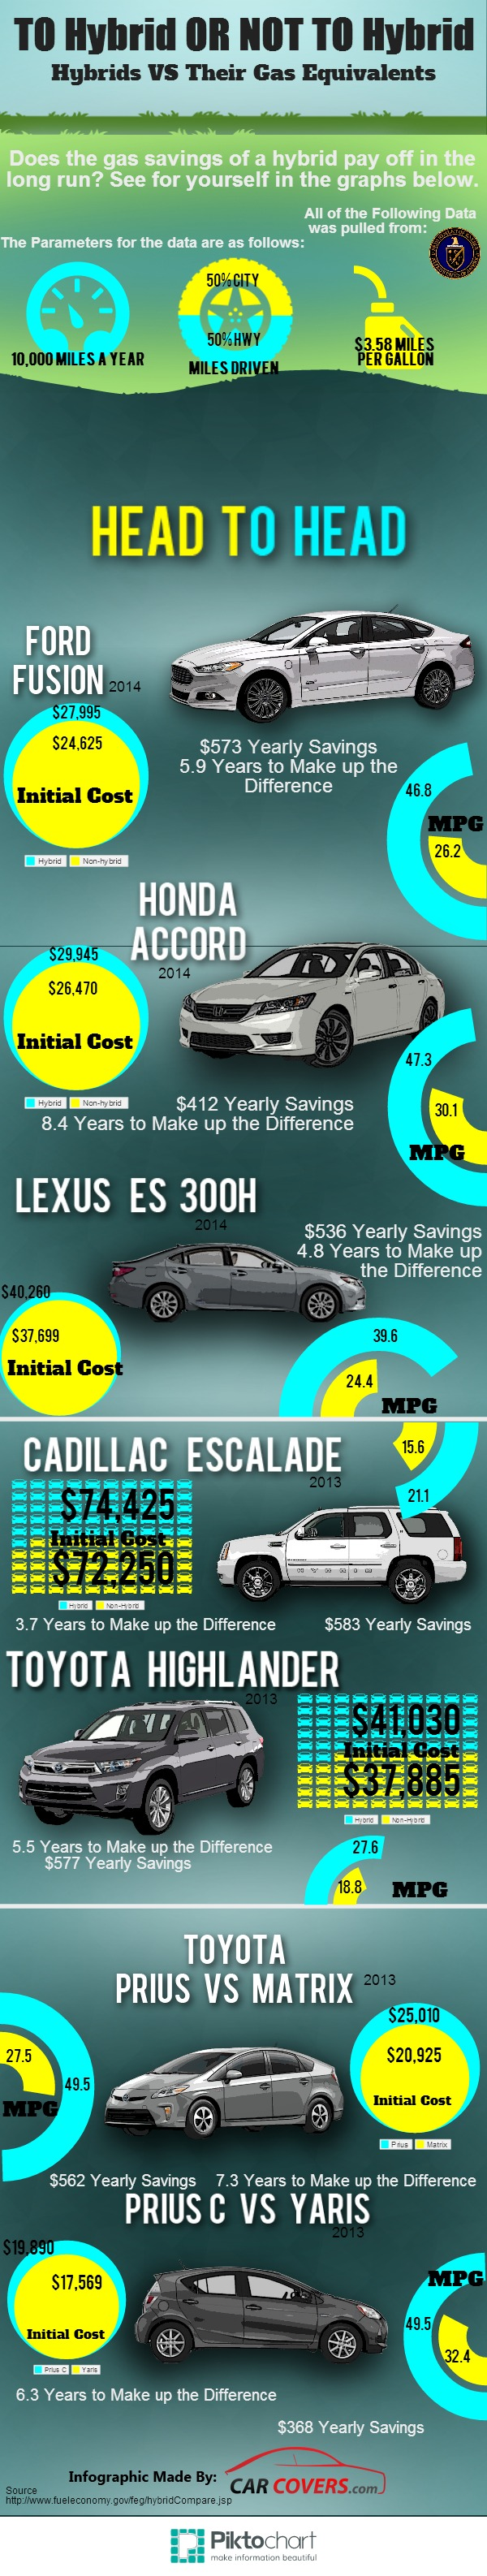 Does the upfront cost of a hybrid vehicle pay off in gas savings in the long run?